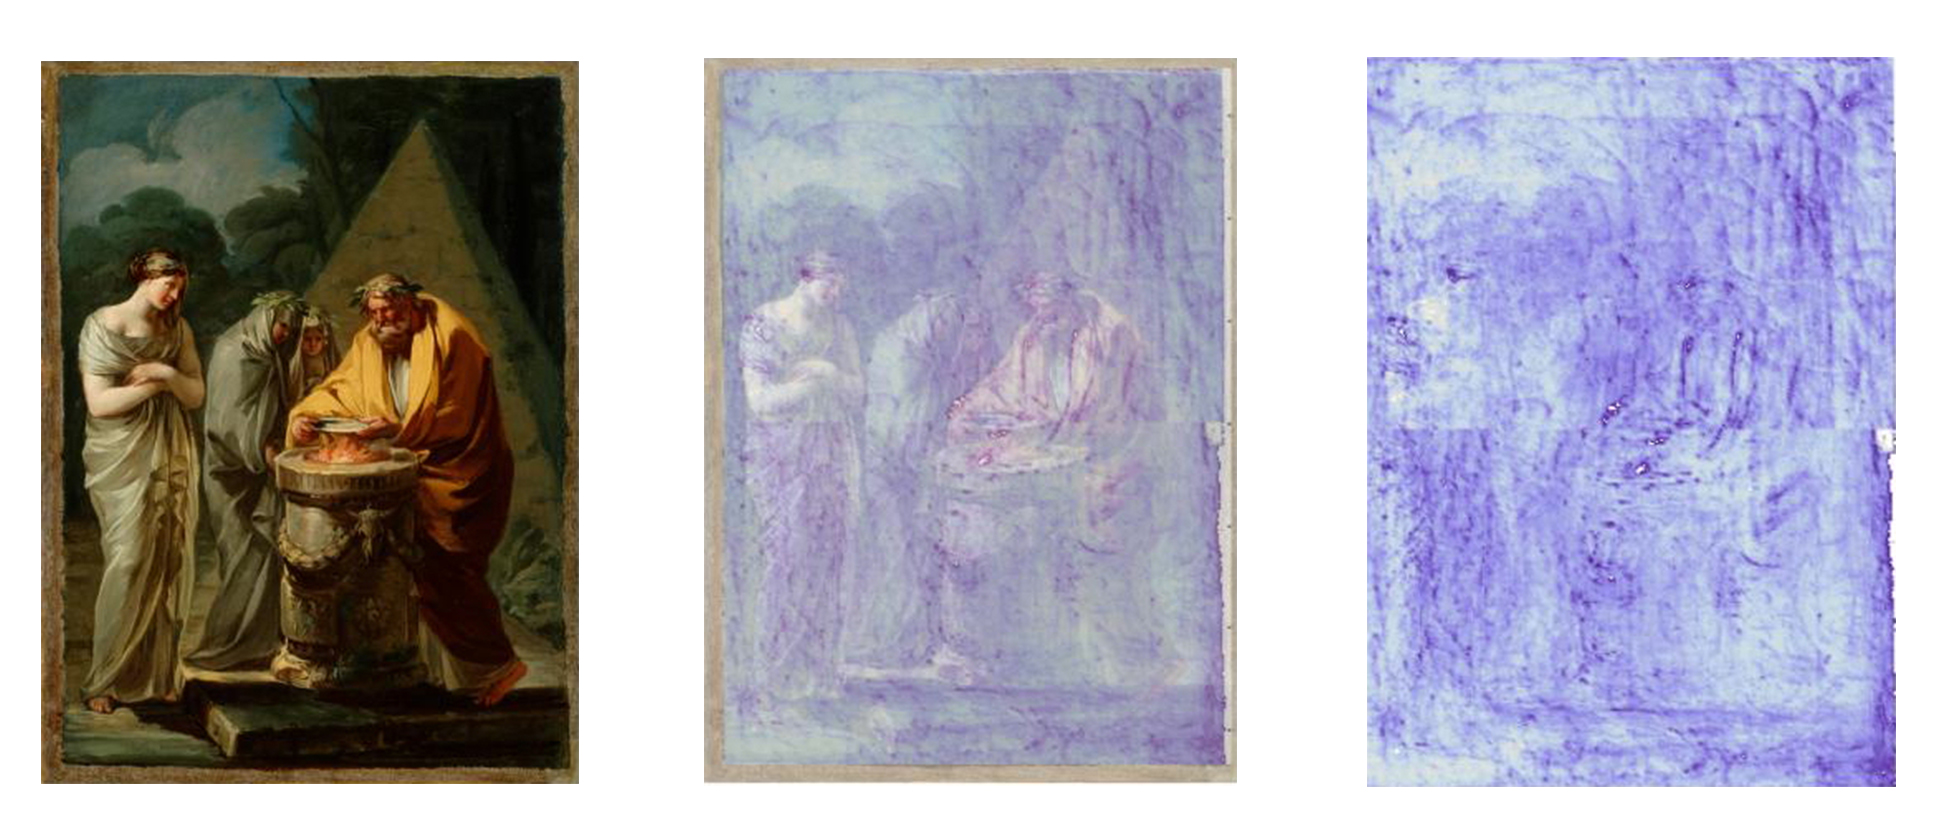 From left to right: Image of Goya's paining, The Sacrifice to Vesta; the same painting with 50% THz visible; 100% THz view of the painting. mage courtesy Albert Redo-Sanchez/MIT Media Lab